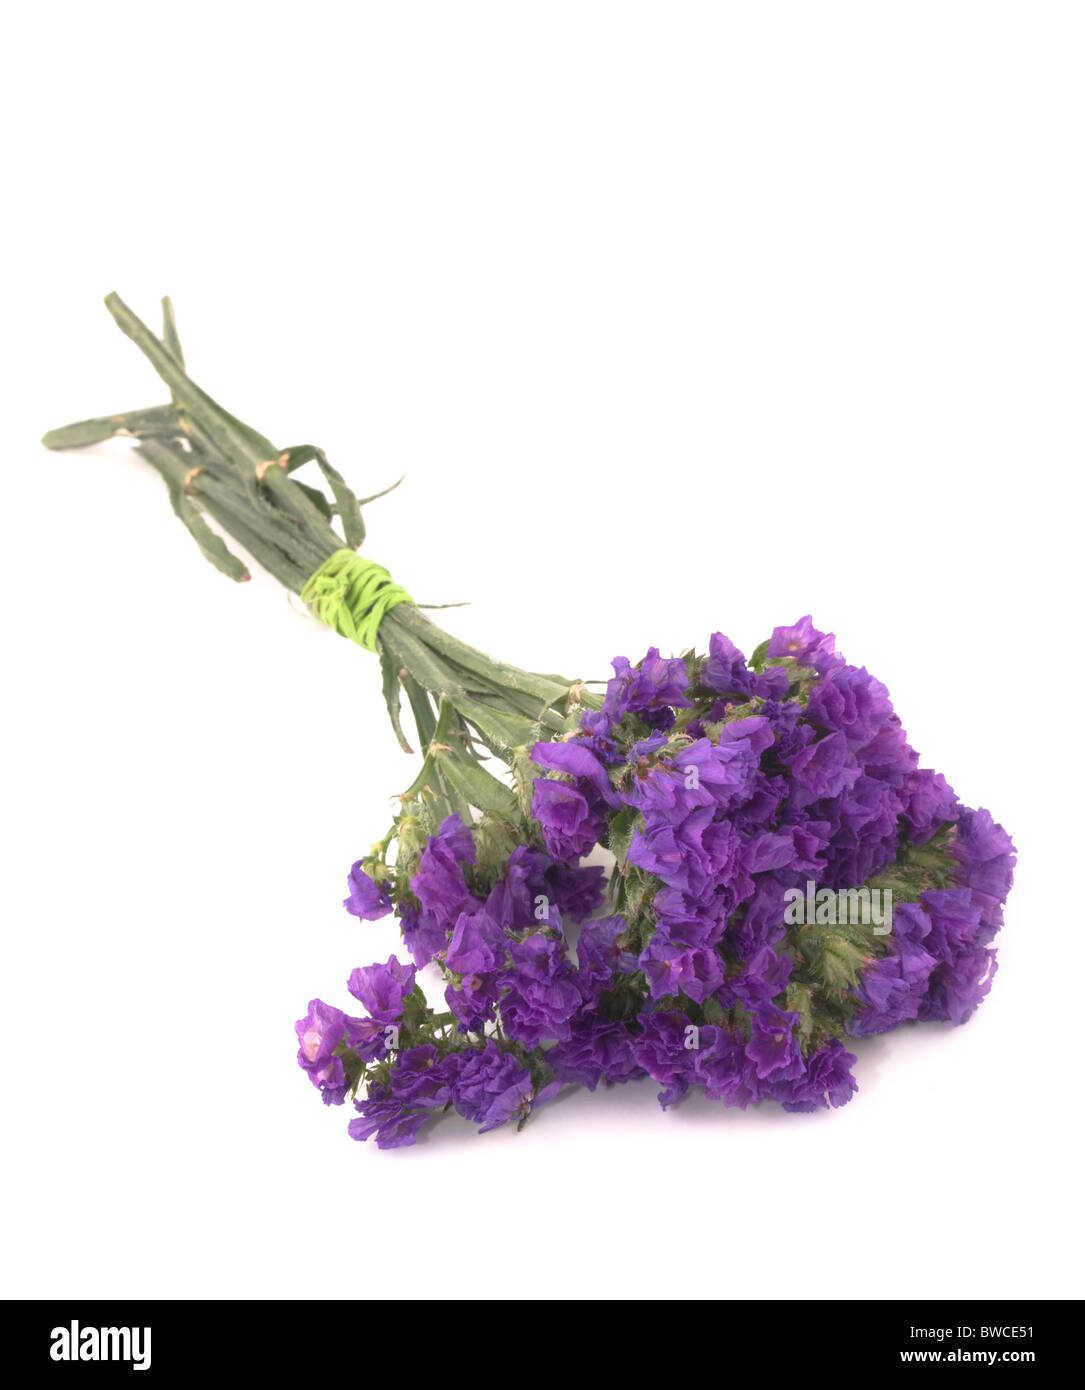 Small bouquet of purple statice flowers on white background - Stock Image